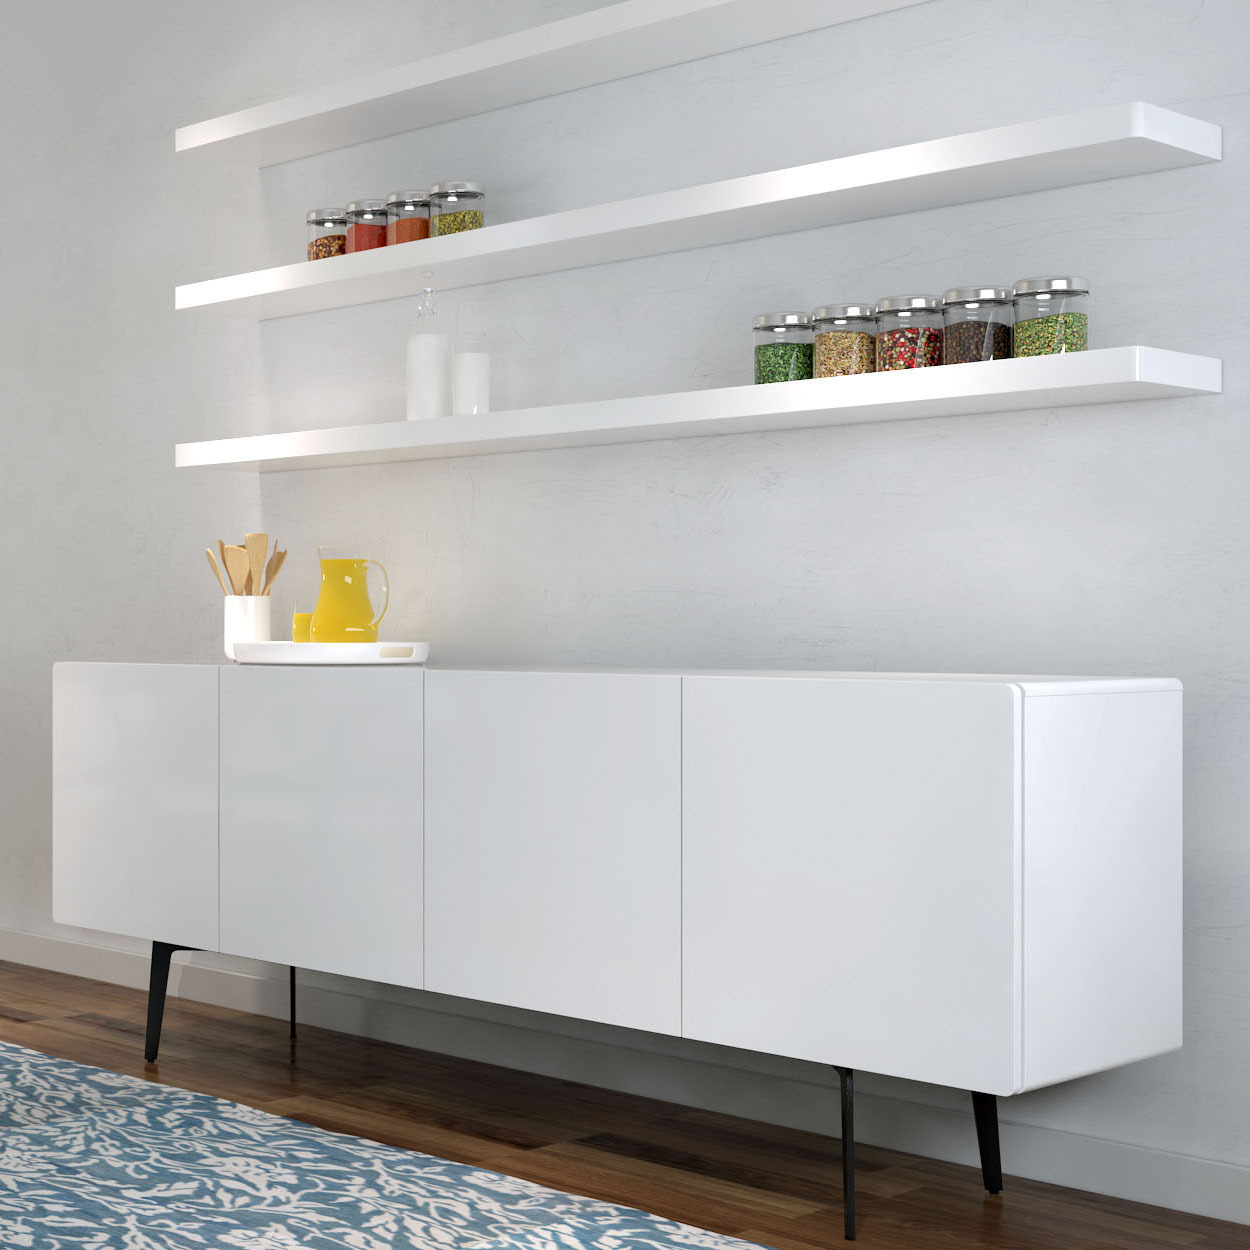 Tips to decorate a room with white floating shelves for Long kitchen wall units